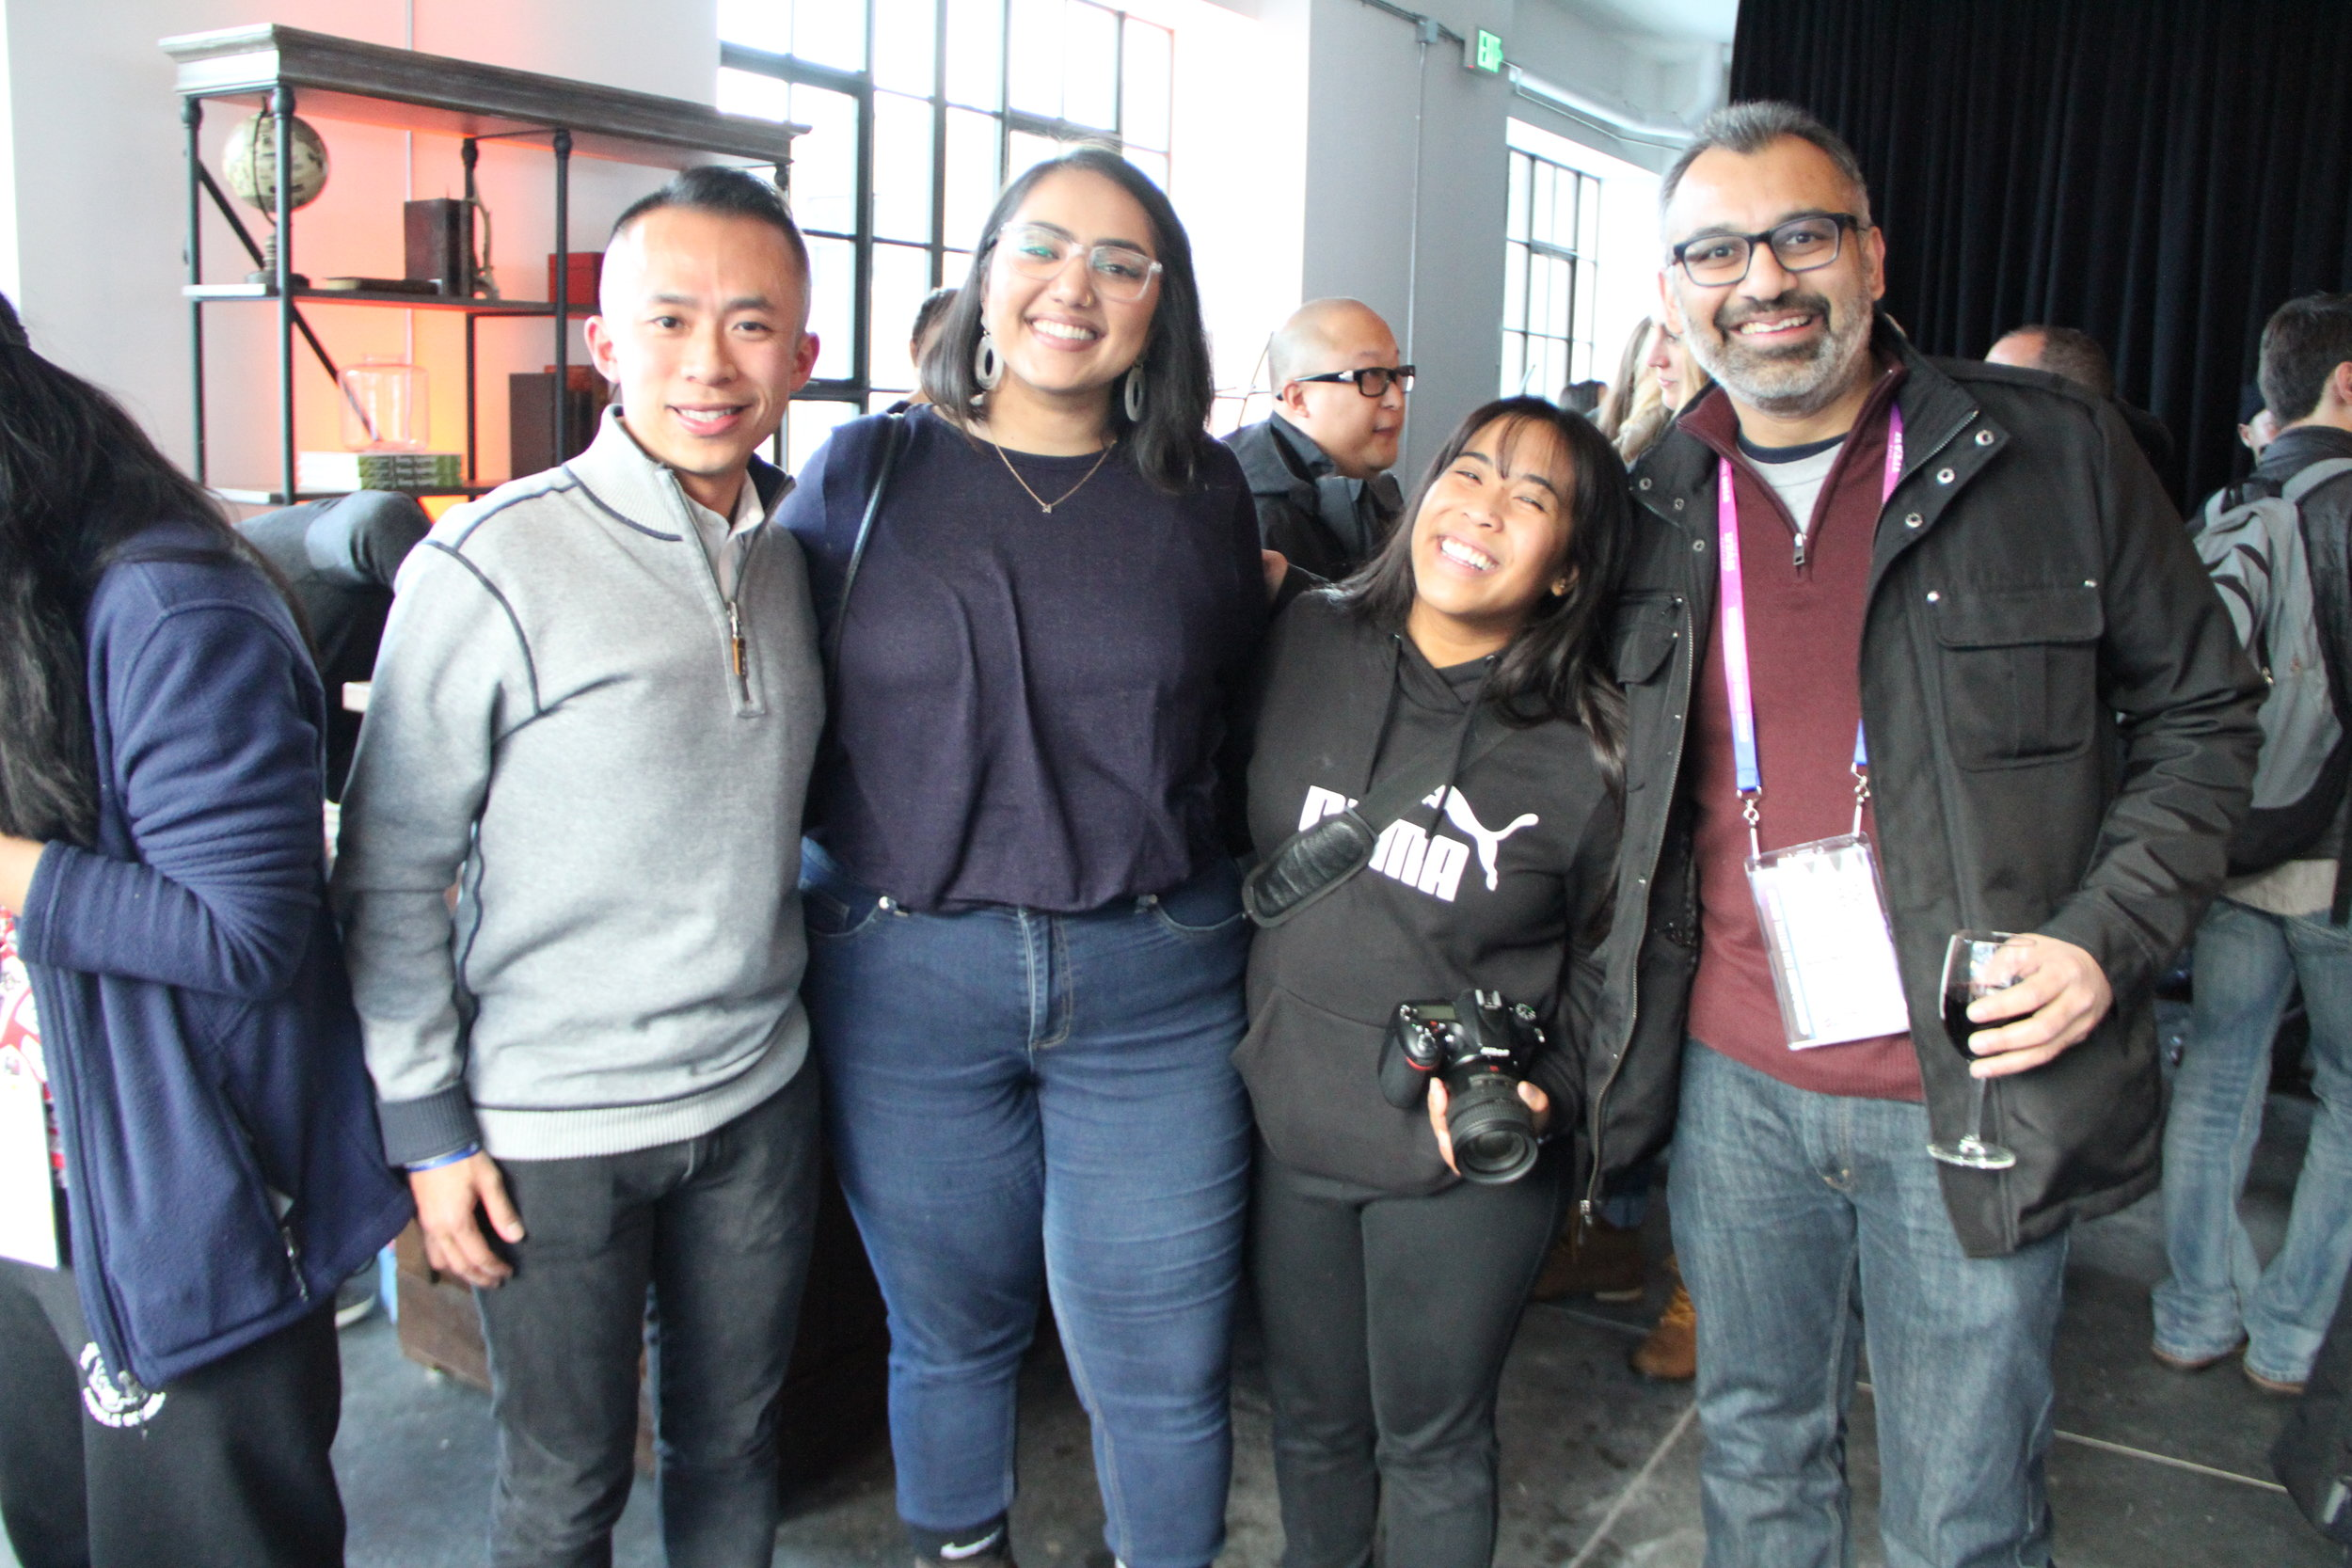 At the RYOT & VICE Studios Lounge, Kollaboration L.A.'s Manpreet Kaur and Aubrey Magalang welcome publicist and San Francisco Film Commissioner Jack Song and filmmaker Soham Mehta. (Photo: Abraham Ferrer/Visual Communications Photographic Archive)